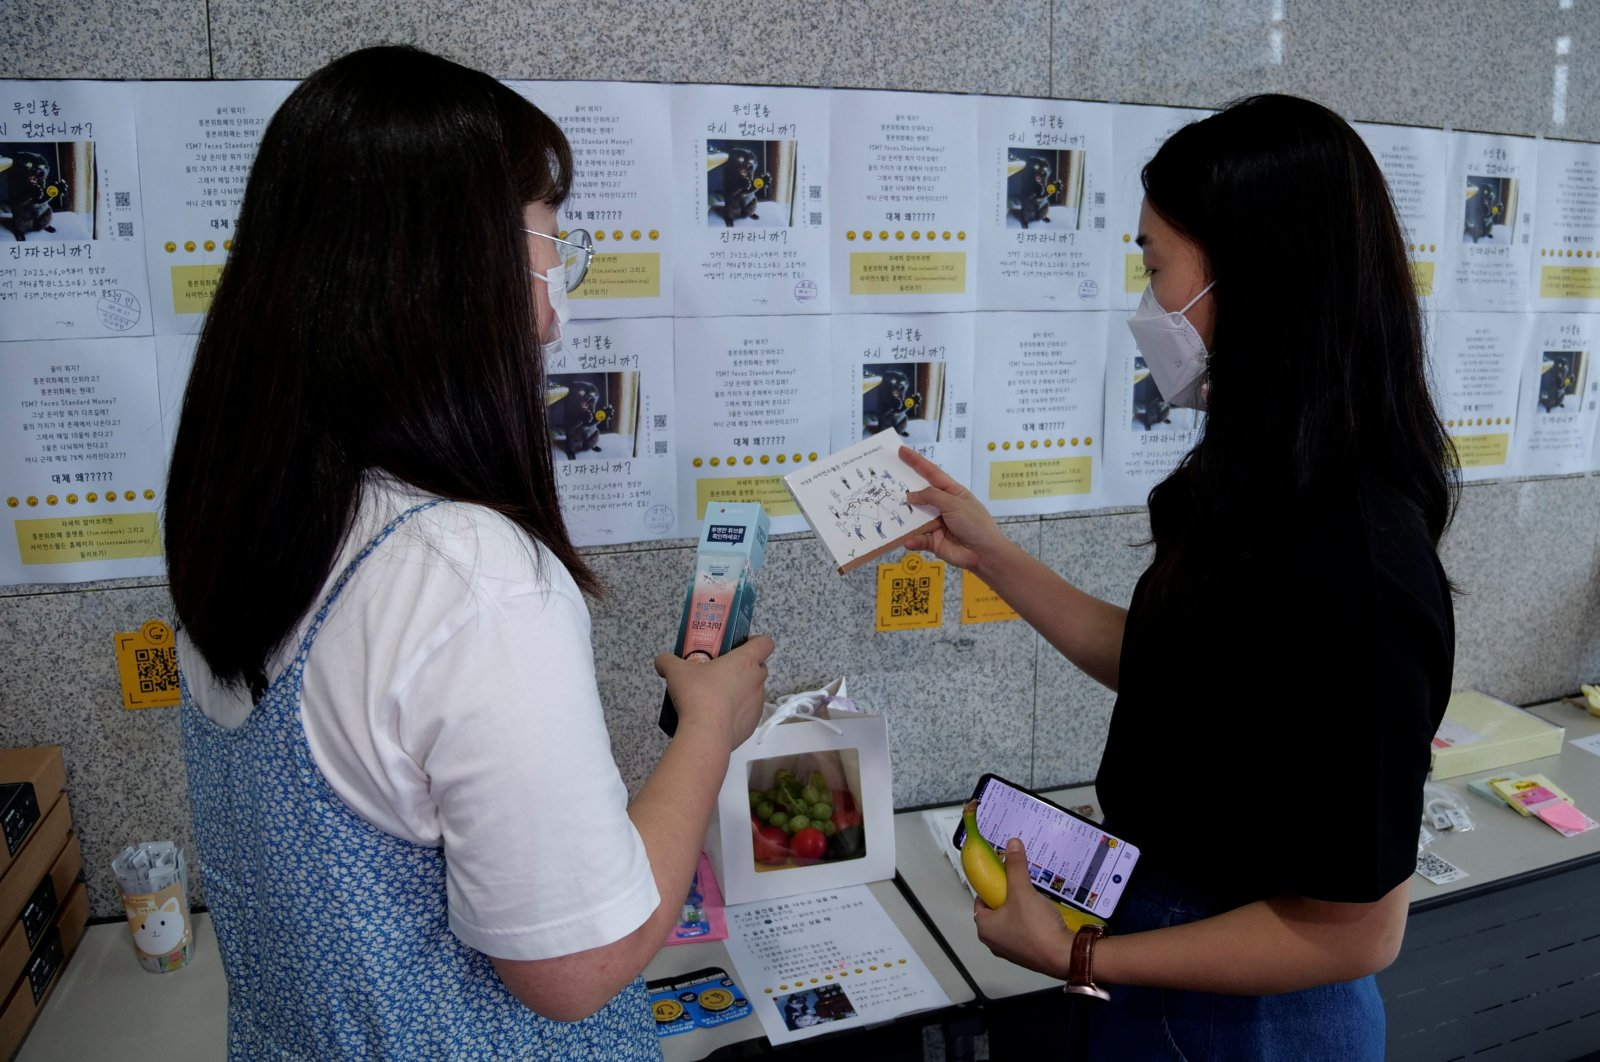 Women take a look at items at a feces currency market at Ulsan National Institute of Science and Technology (UNIST) in Ulsan, South Korea, July 6, 2021. (Reuters Photo)